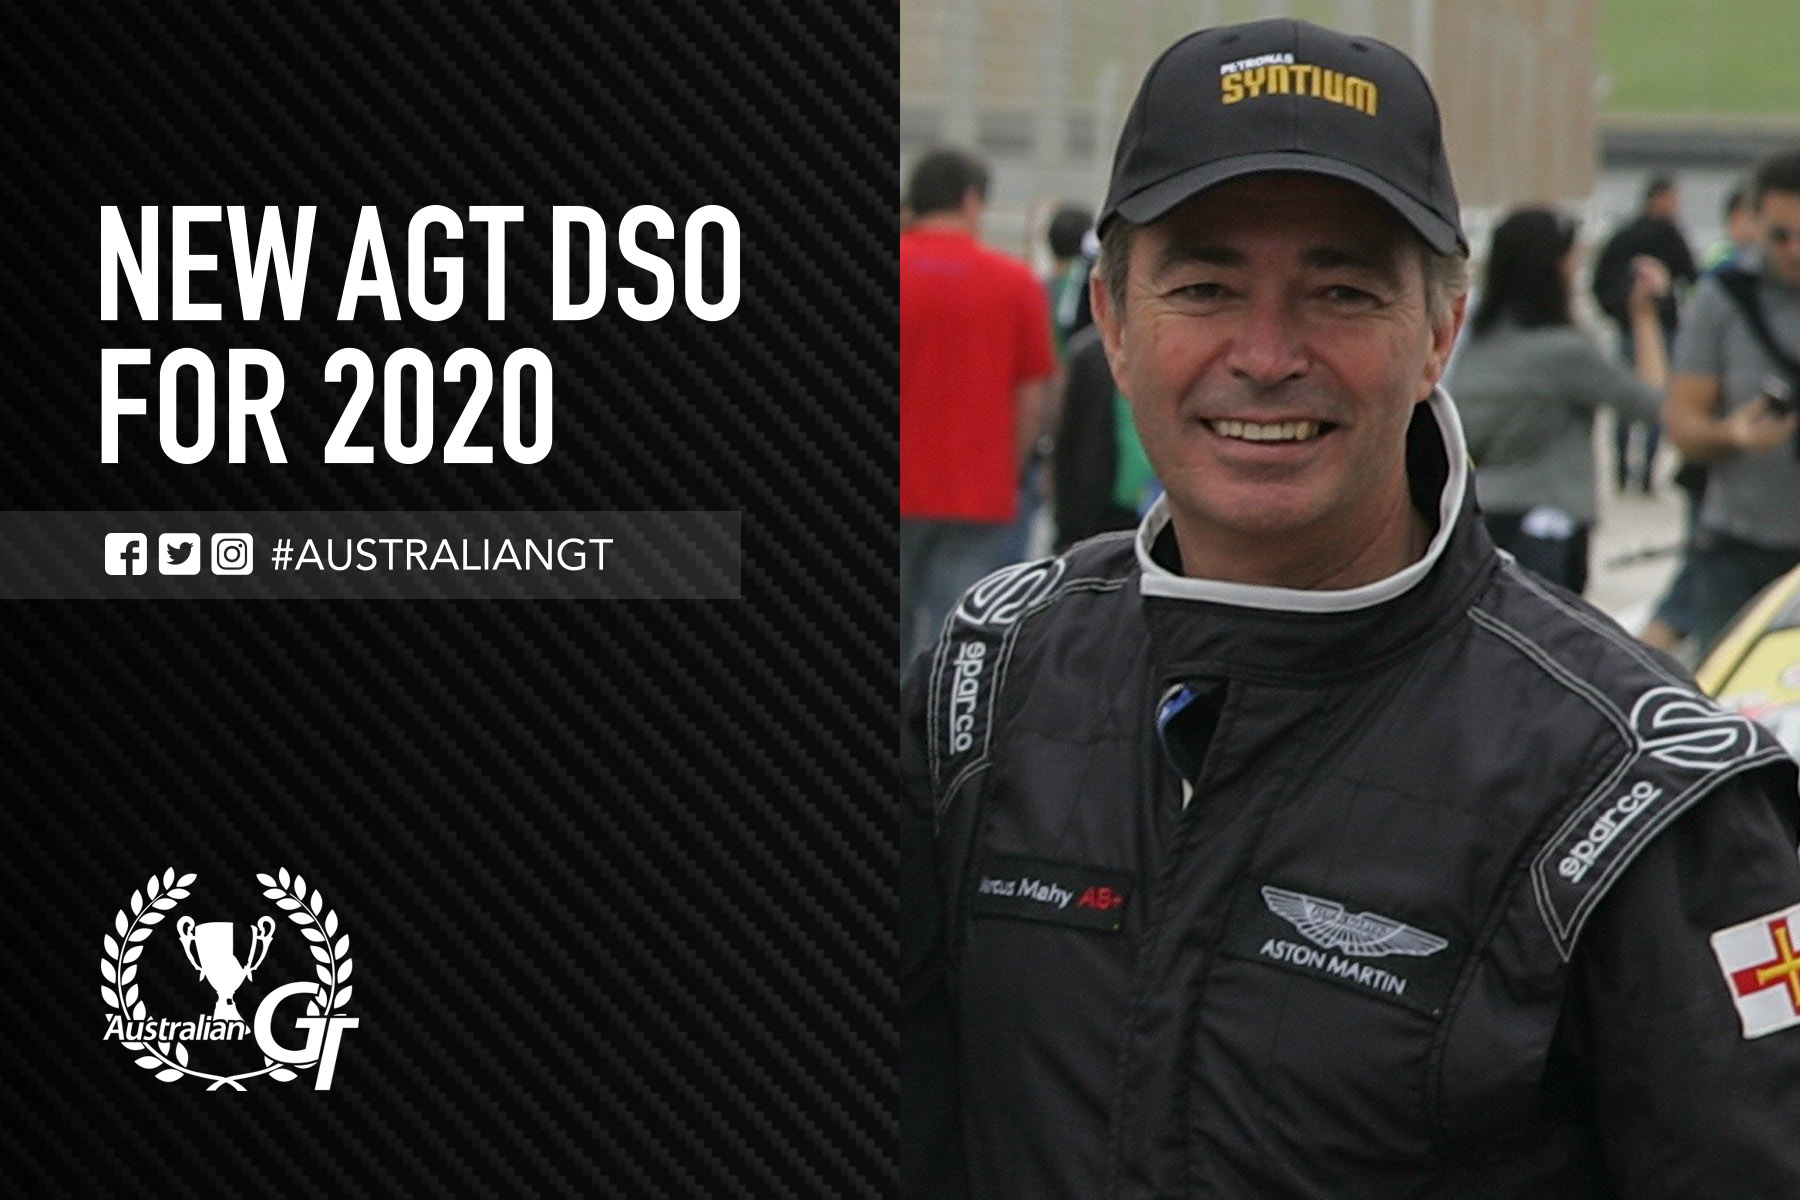 Experienced international competitor to take DSO reigns